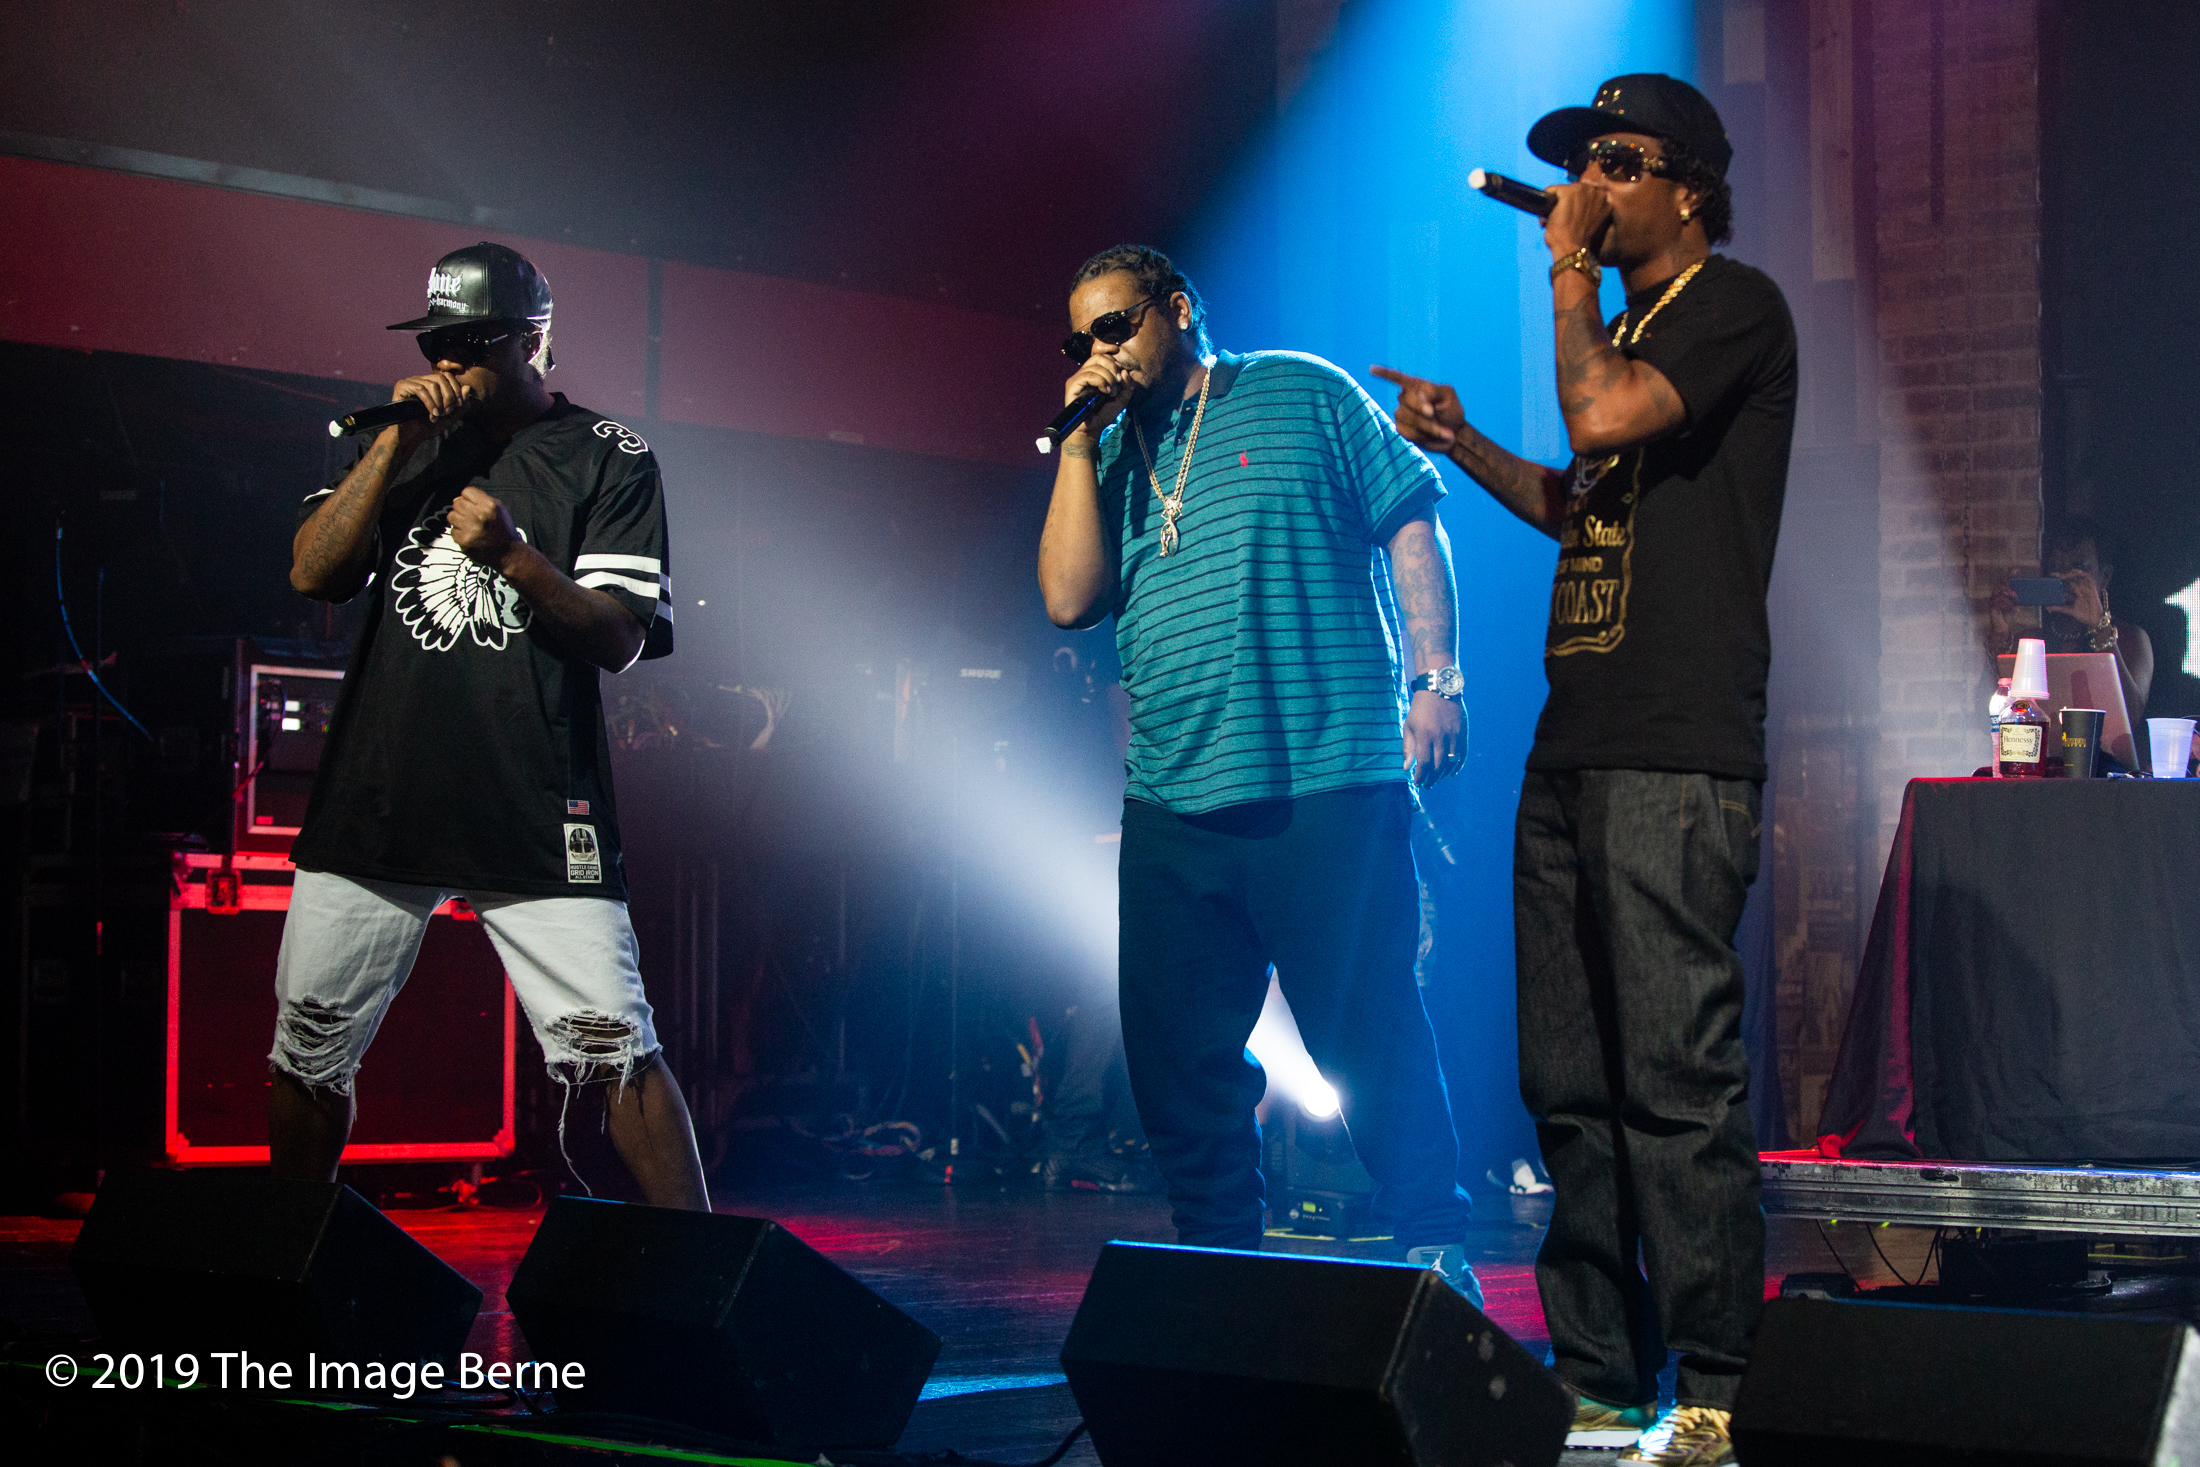 Krayzie Bone, Wish Bone, Flesh-N-Bone, Layzie Bone, and Bizzy Bone-047.jpg